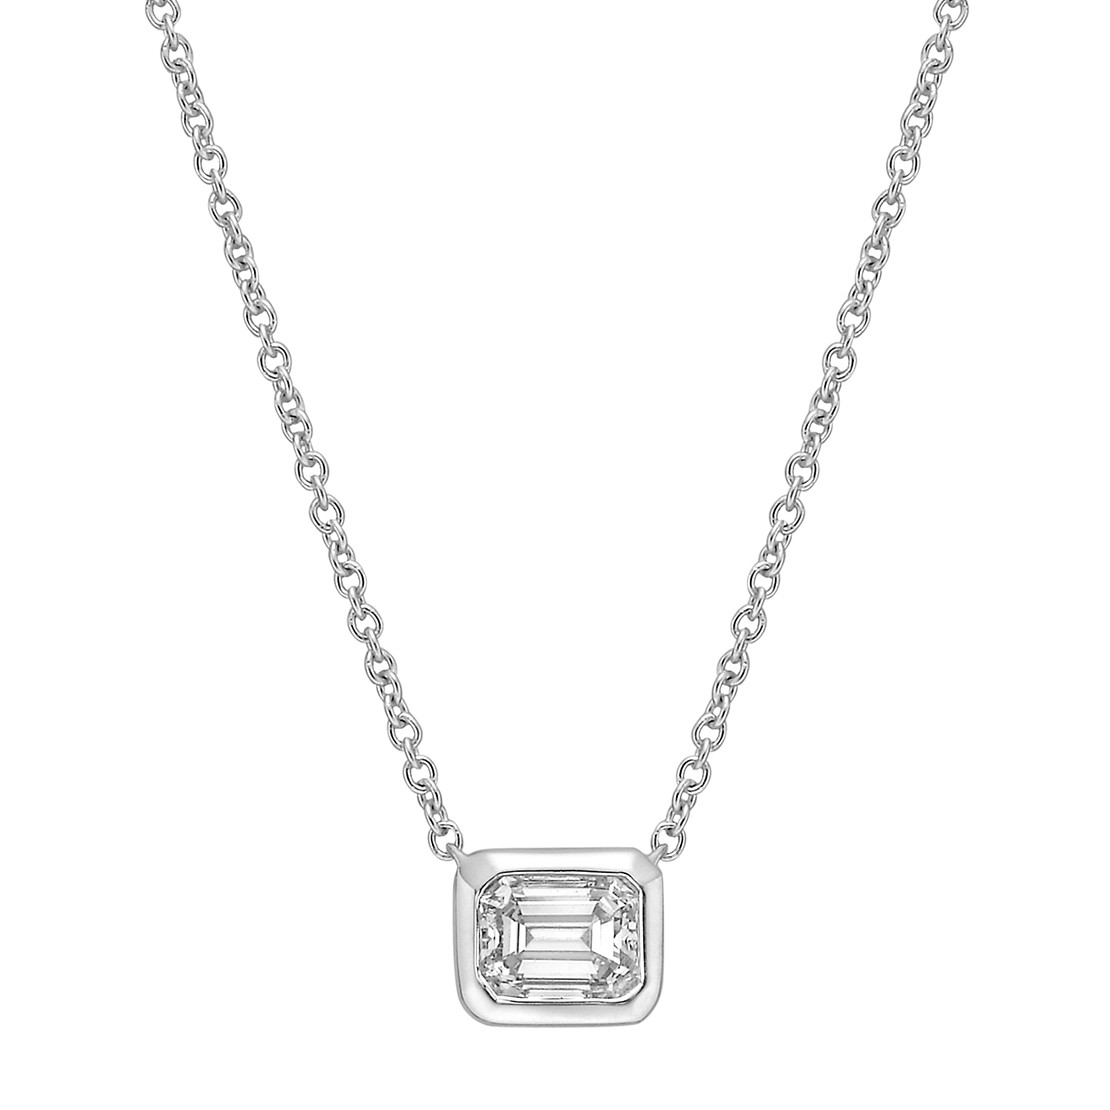 0.40 Carat Emerald-Cut Diamond Solitaire Pendant